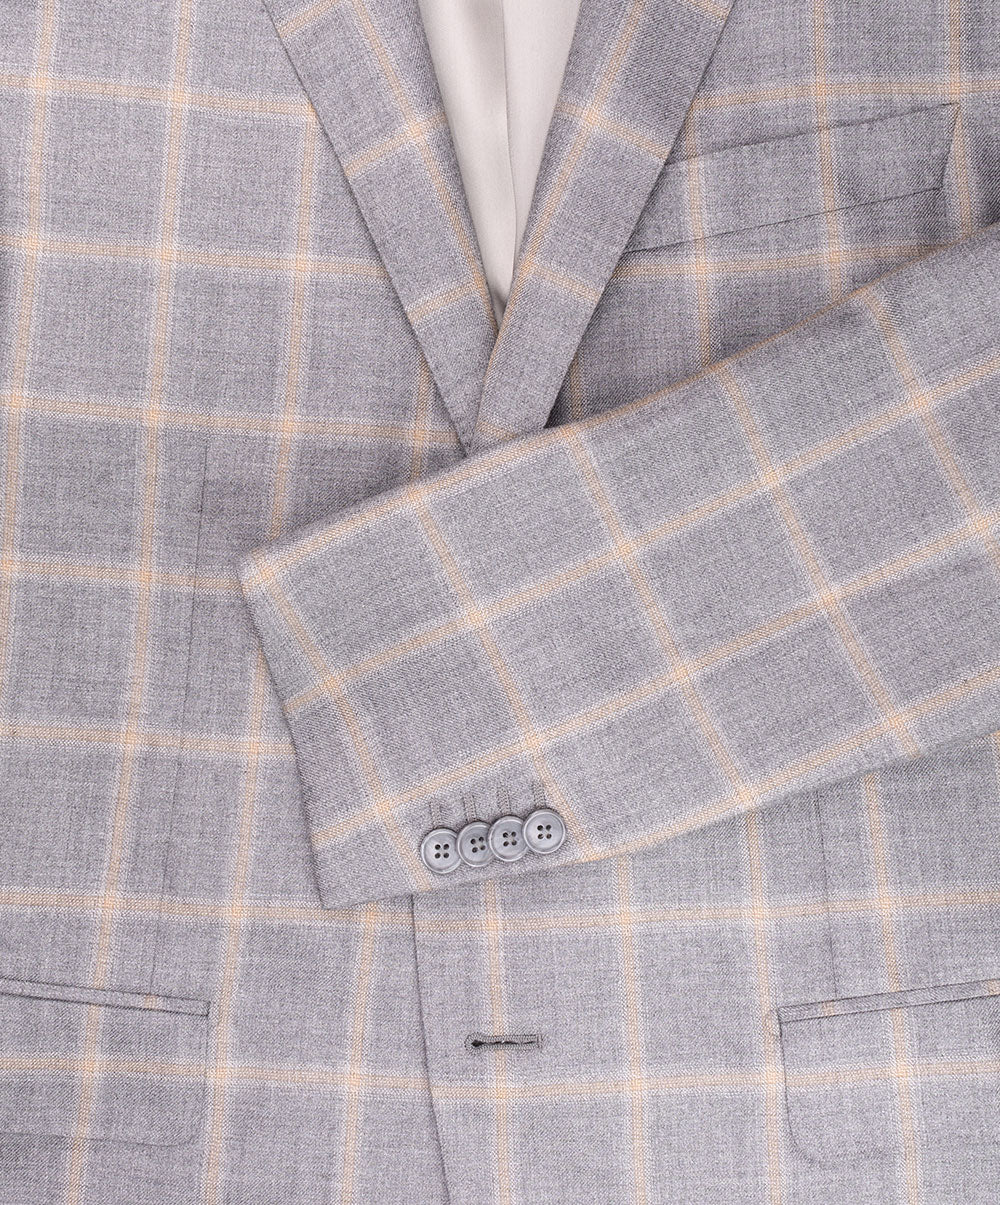 Rum/Caramel/Grey Large Blended Window Pane Sport Jacket